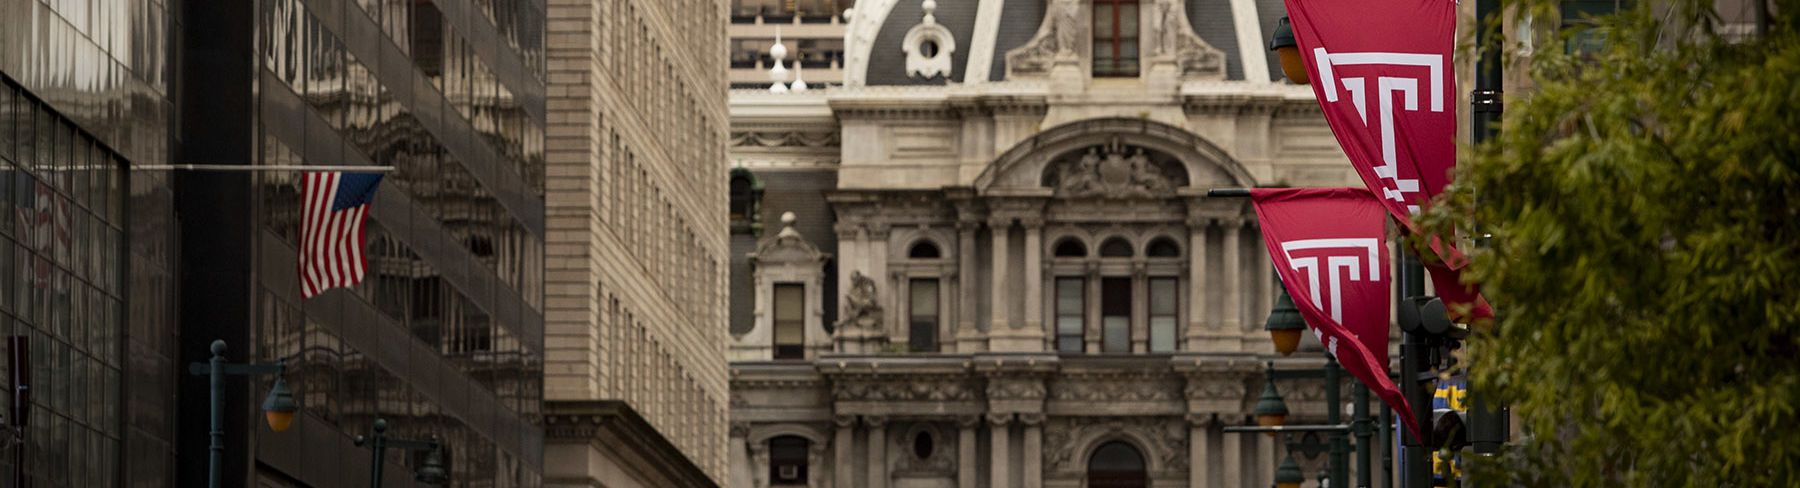 Philadelphia's City Hall building on Market Street lined with cherry red Temple T flags